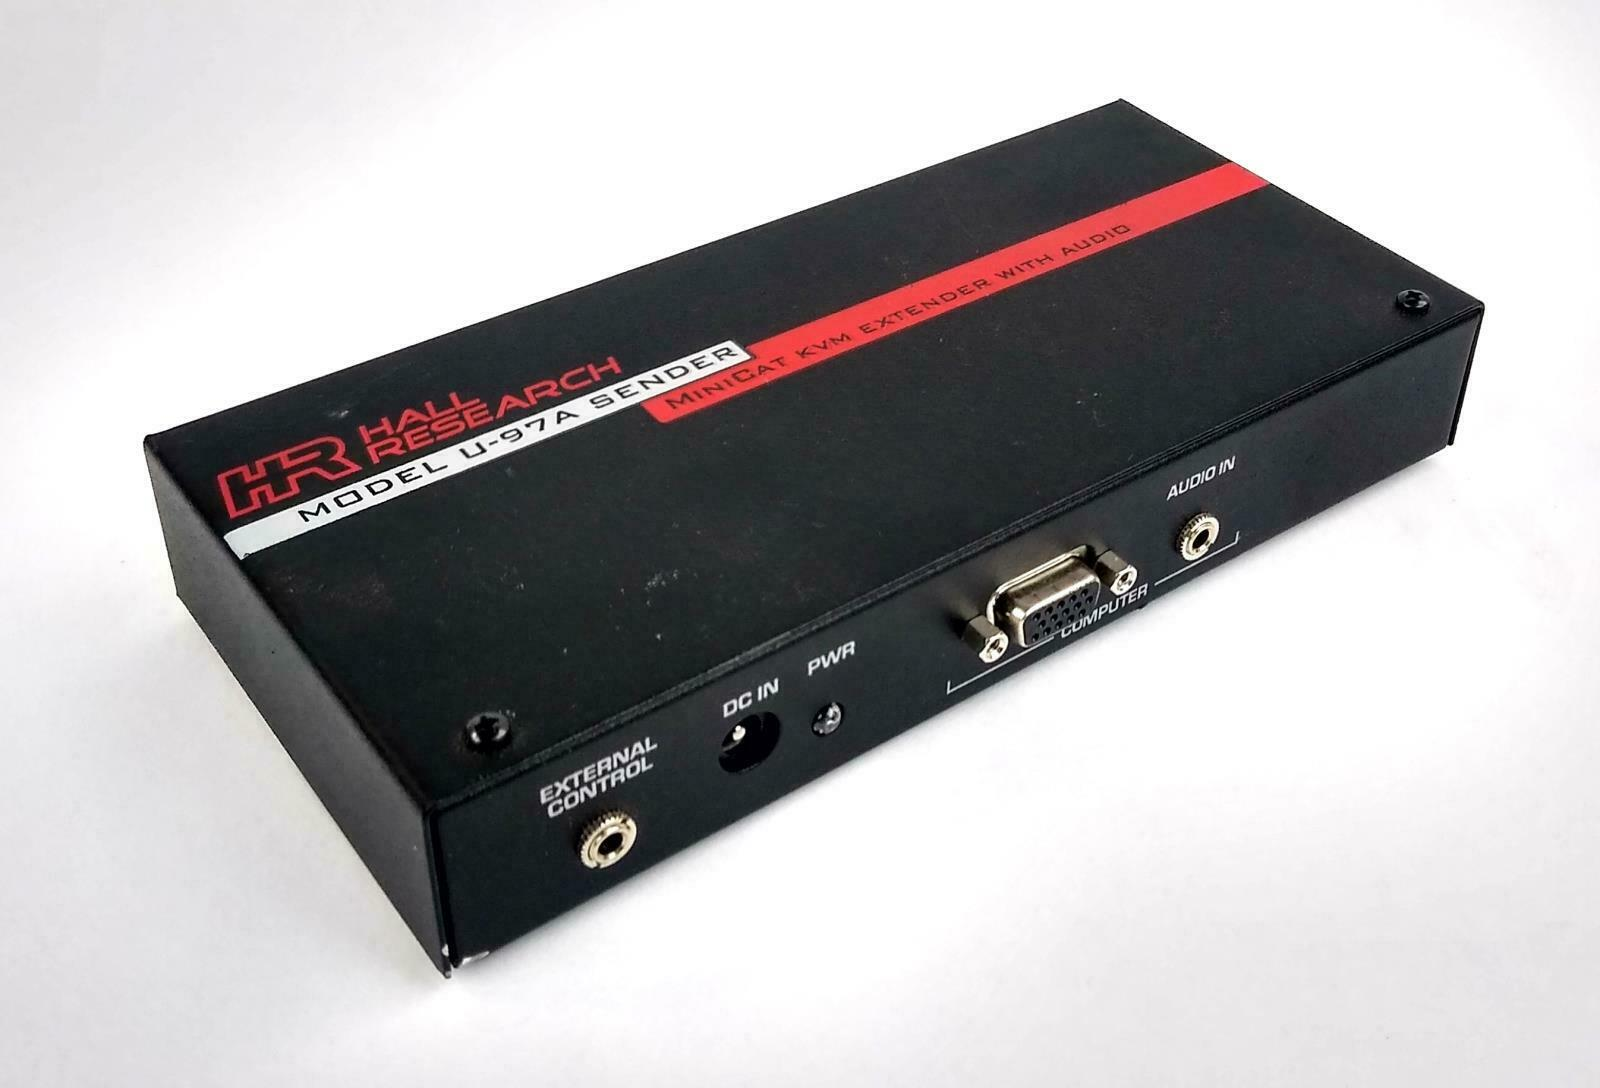 Hall Research U97-A Sender Minicat KVM Extender With Audio - TESTED & WORKING